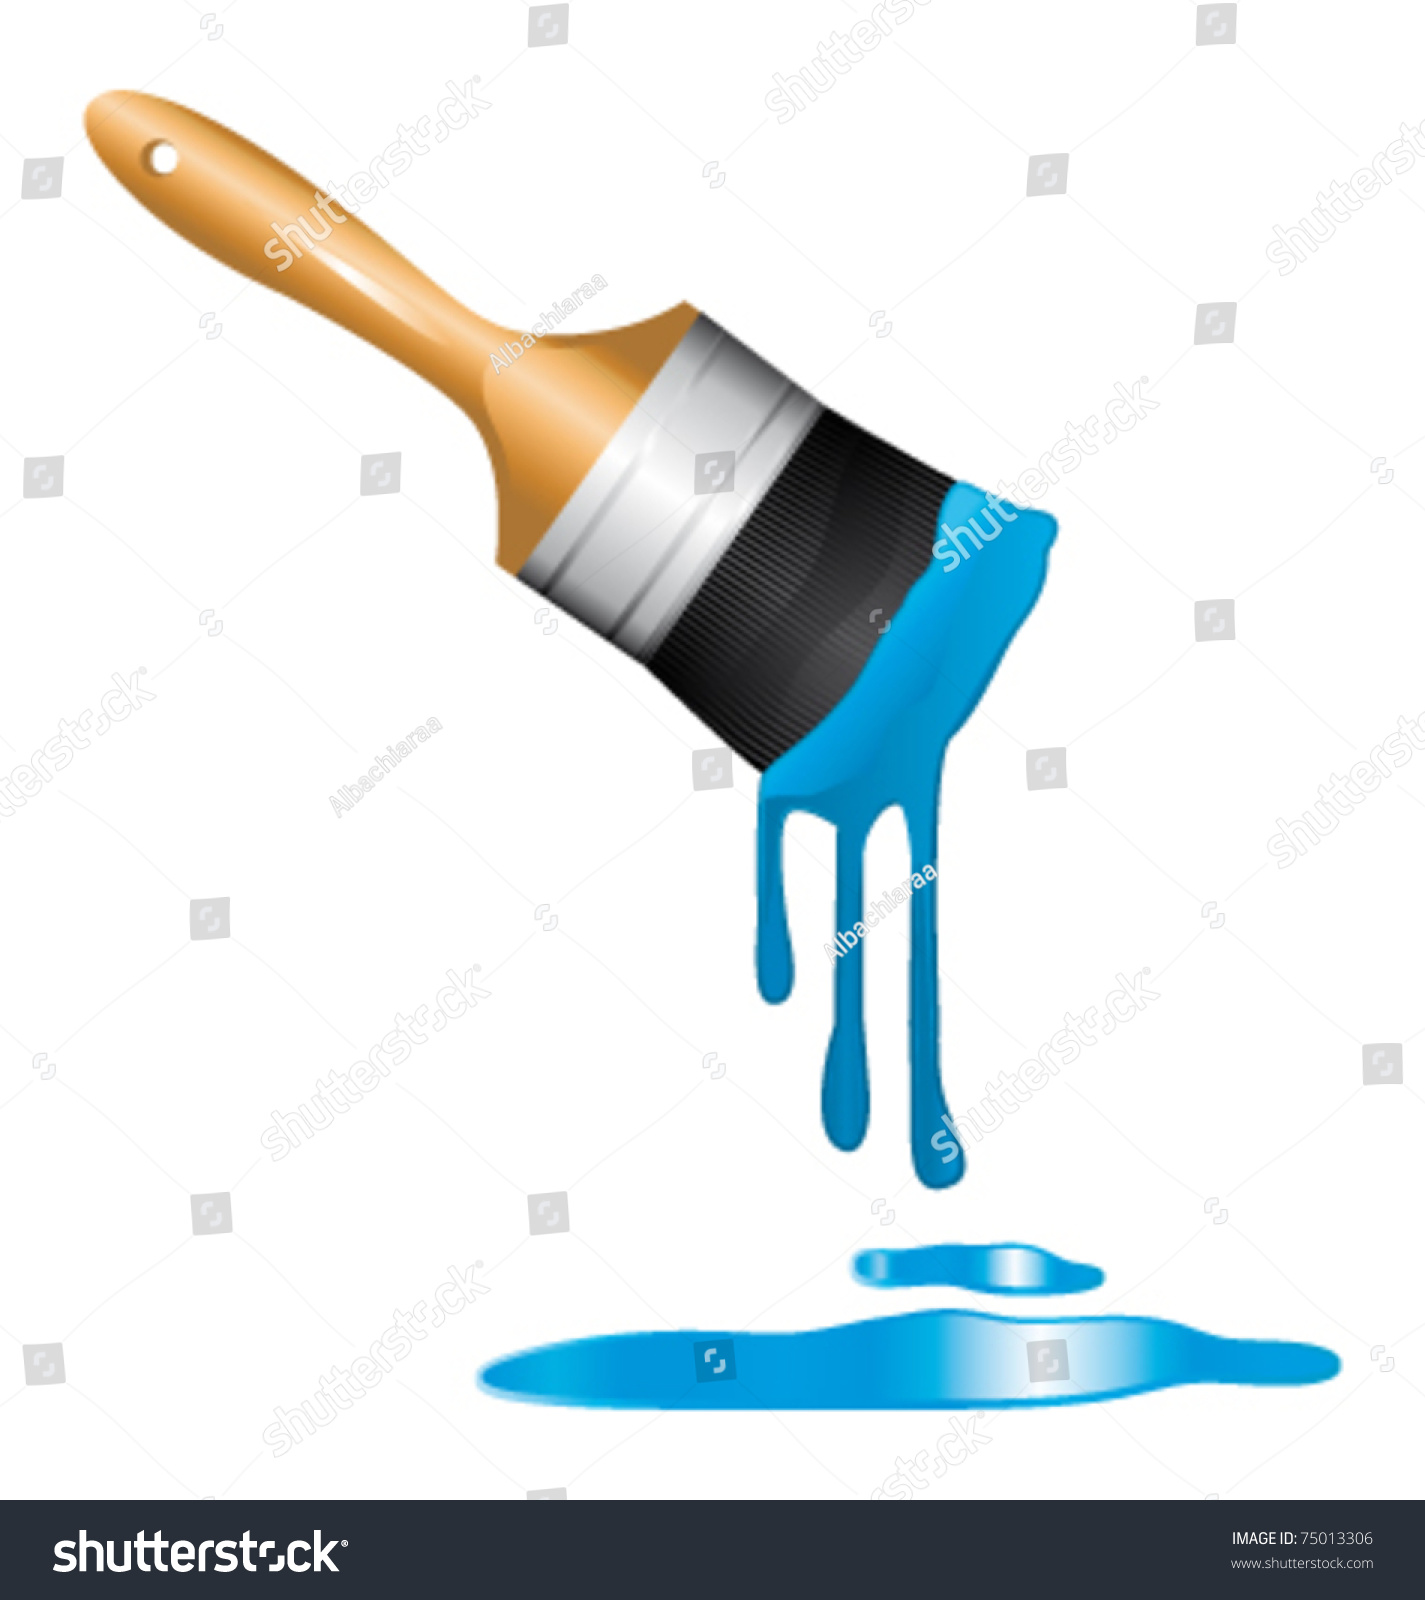 Brush Dipped In Blue Paint. Vector Icon.75013306 Shutterstock